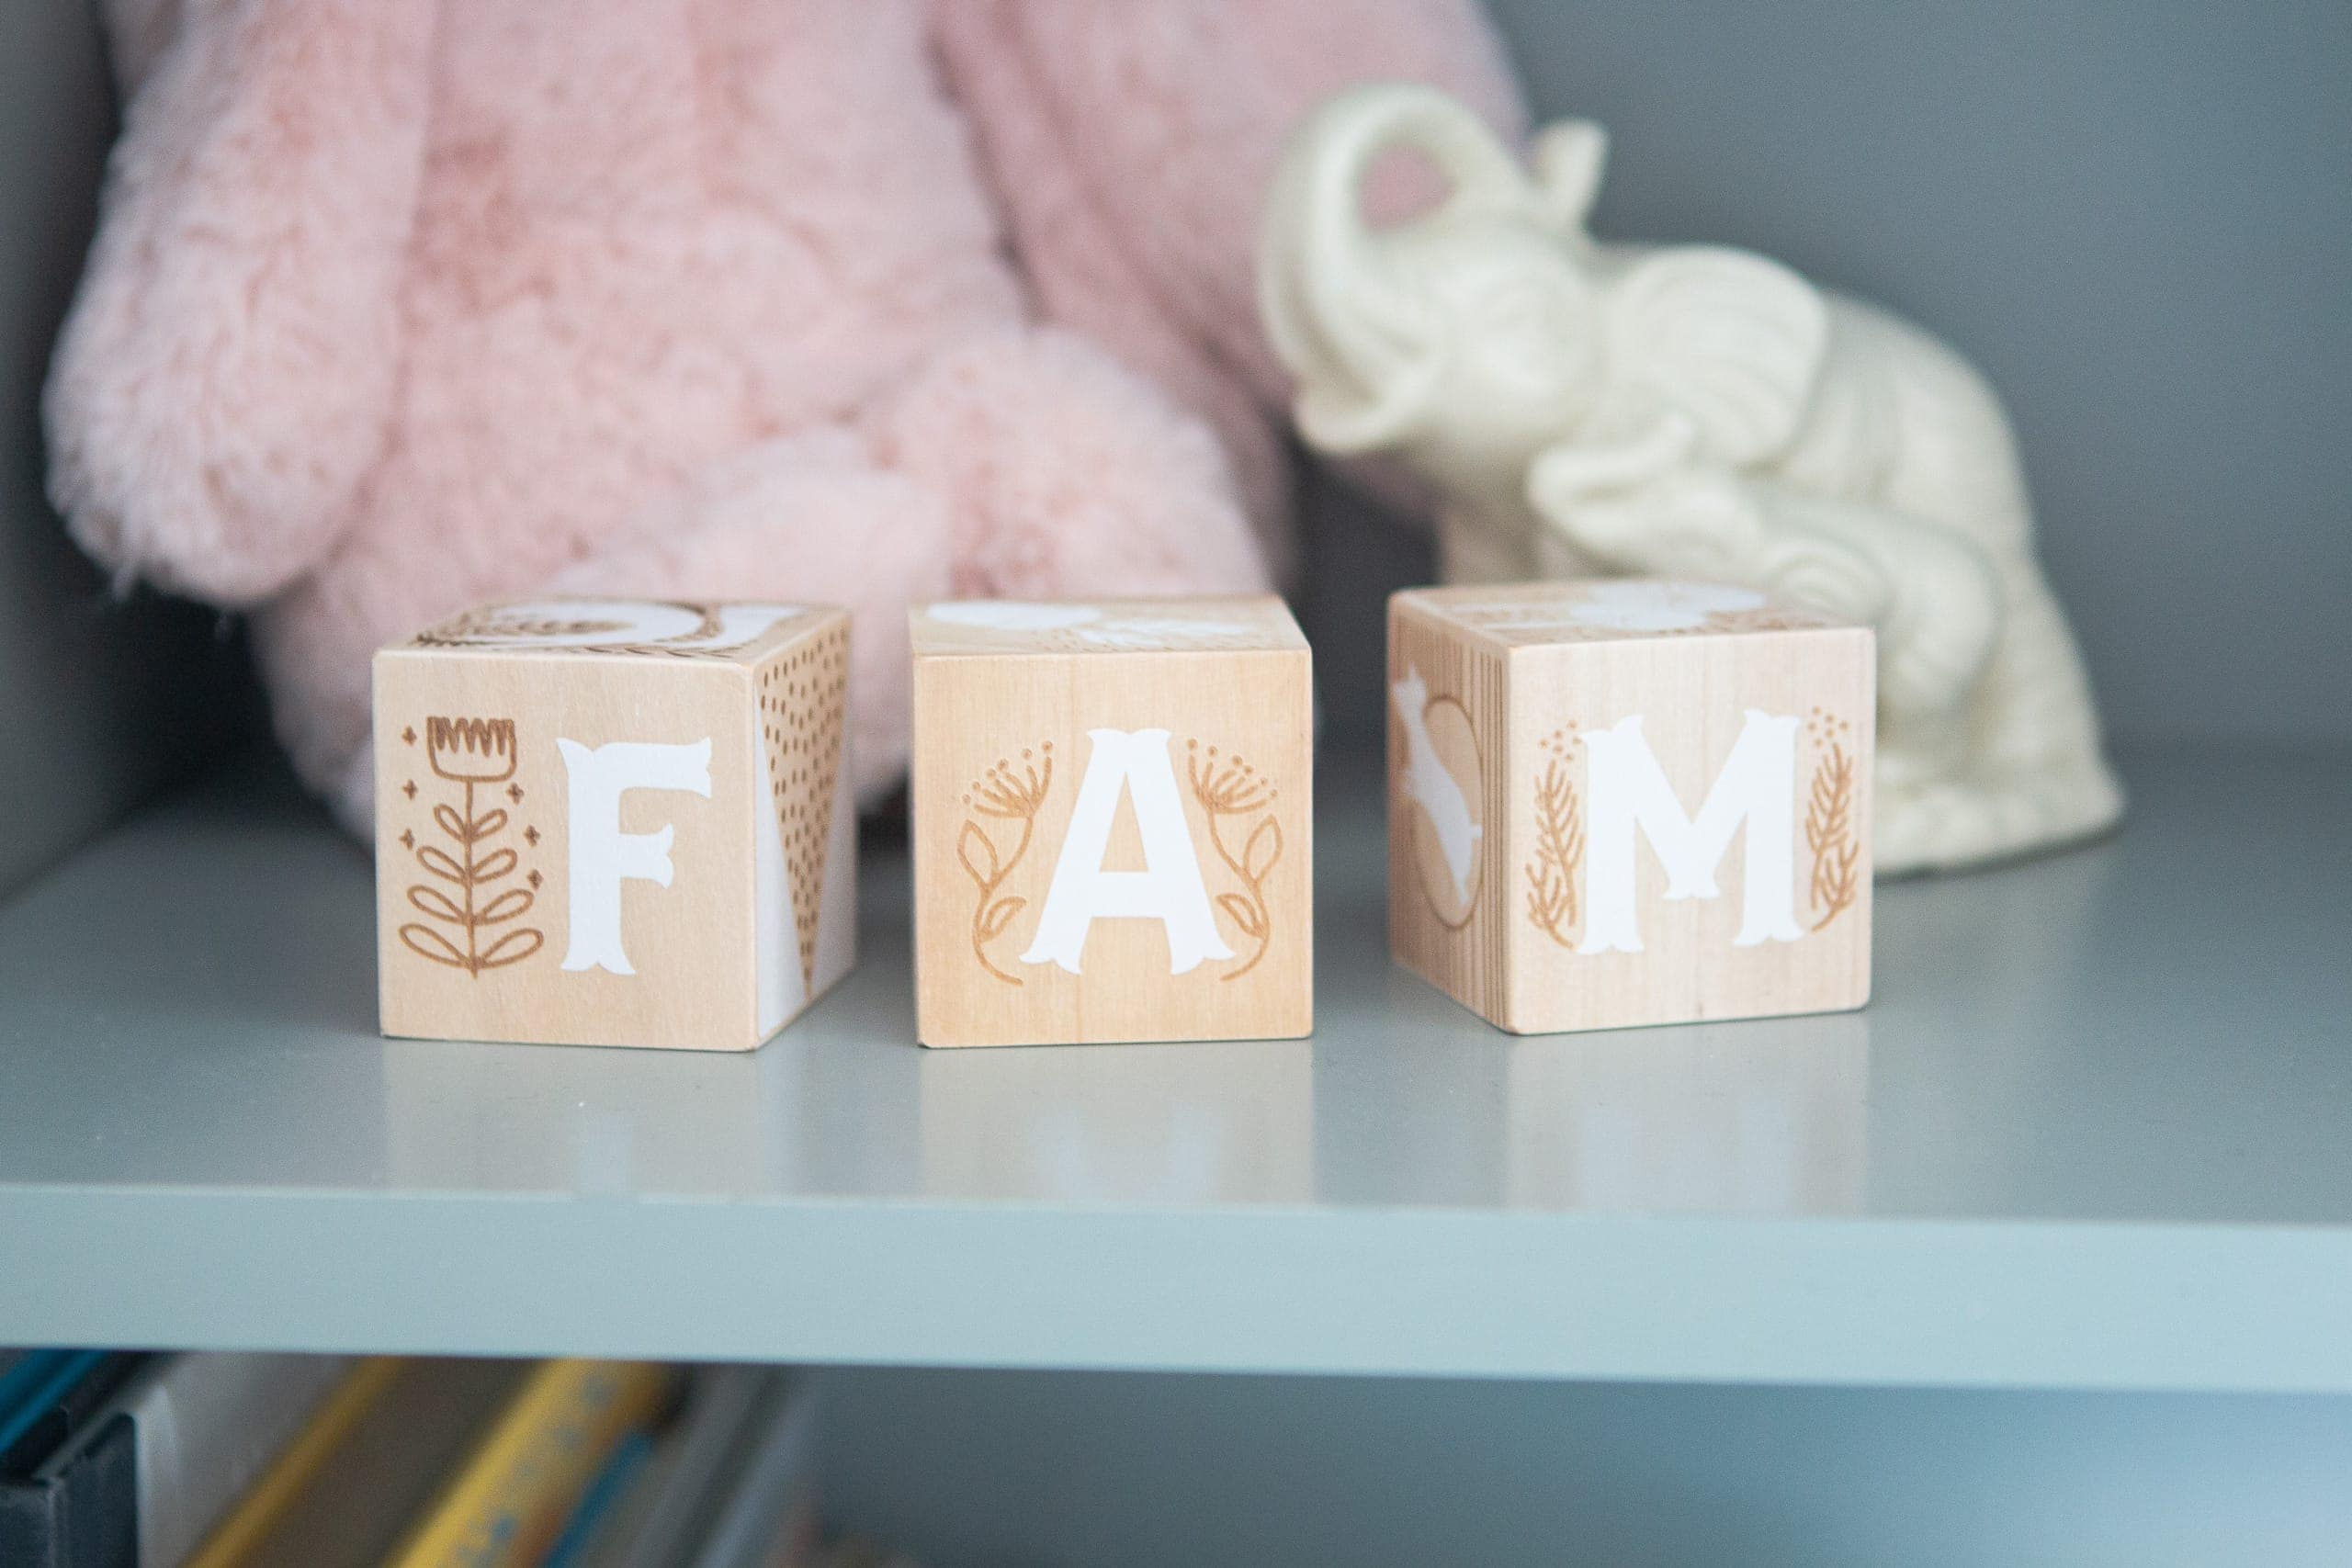 Wooden blocks as decor in a baby girl's nursery